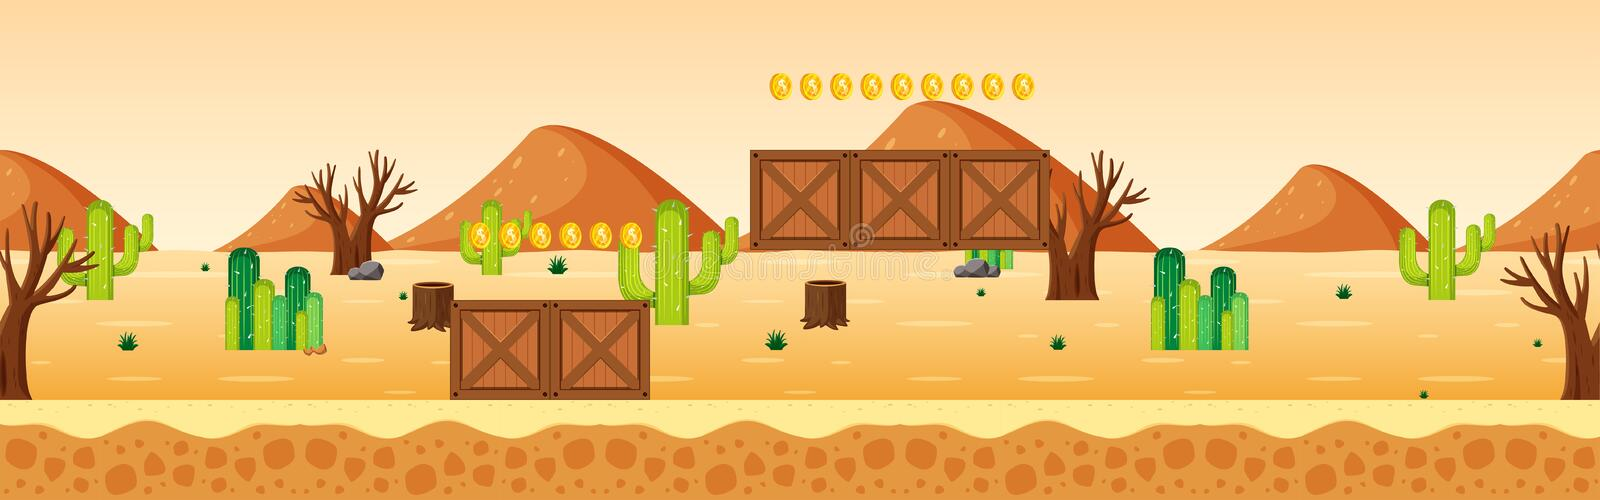 Coin Collecting Game Desert Scene royalty free illustration